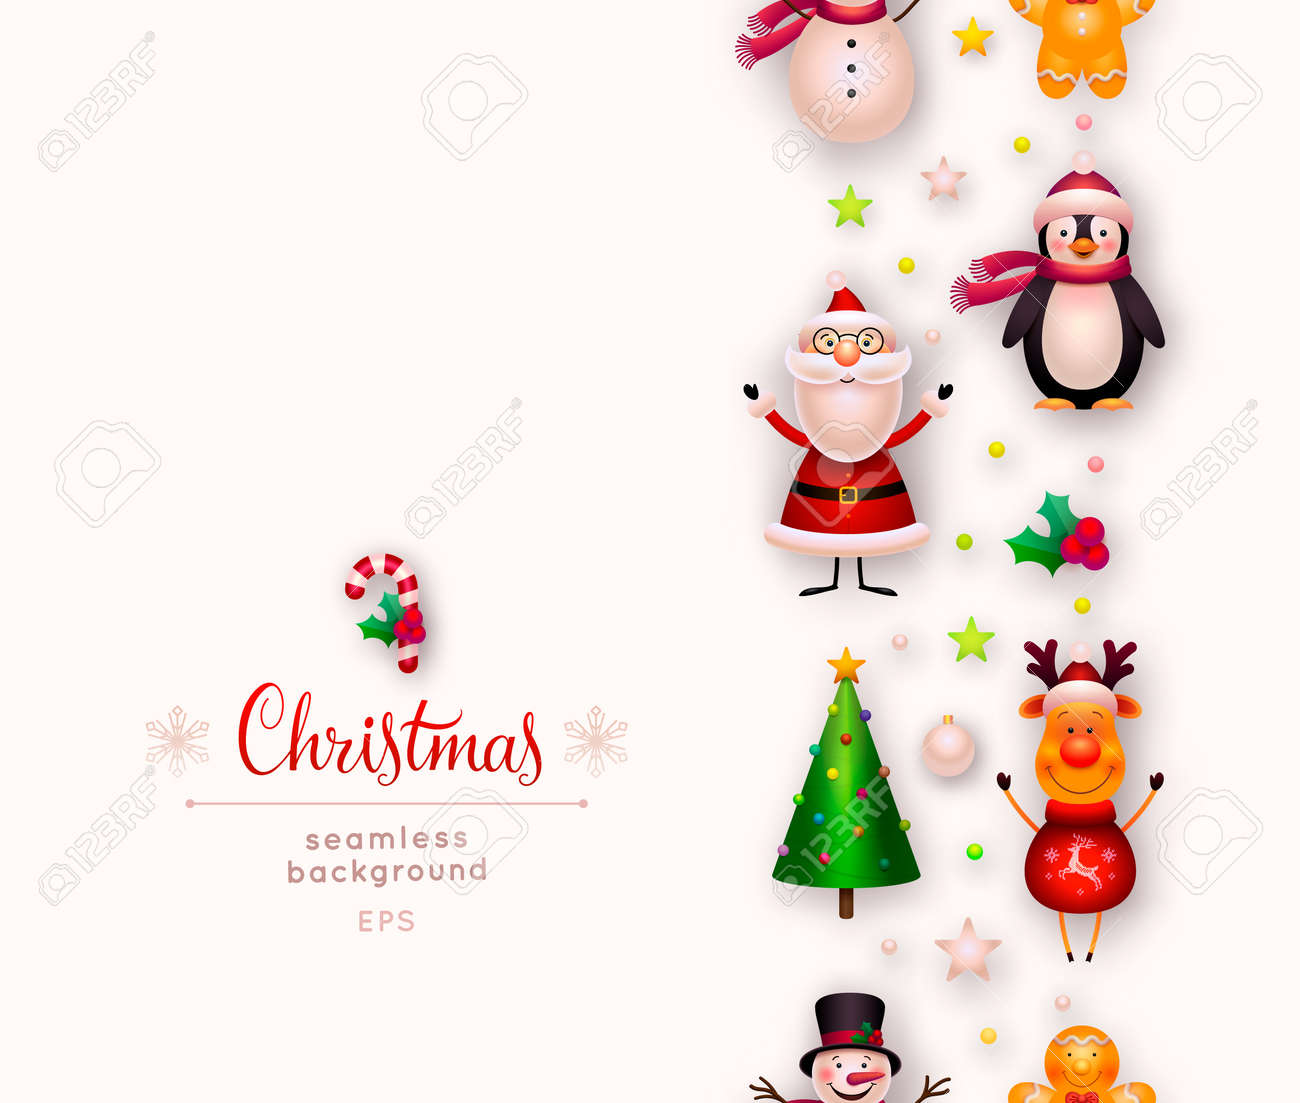 vector christmas background new year and xmas decorations cute stock photo picture and royalty free image image 112127678 123rf com